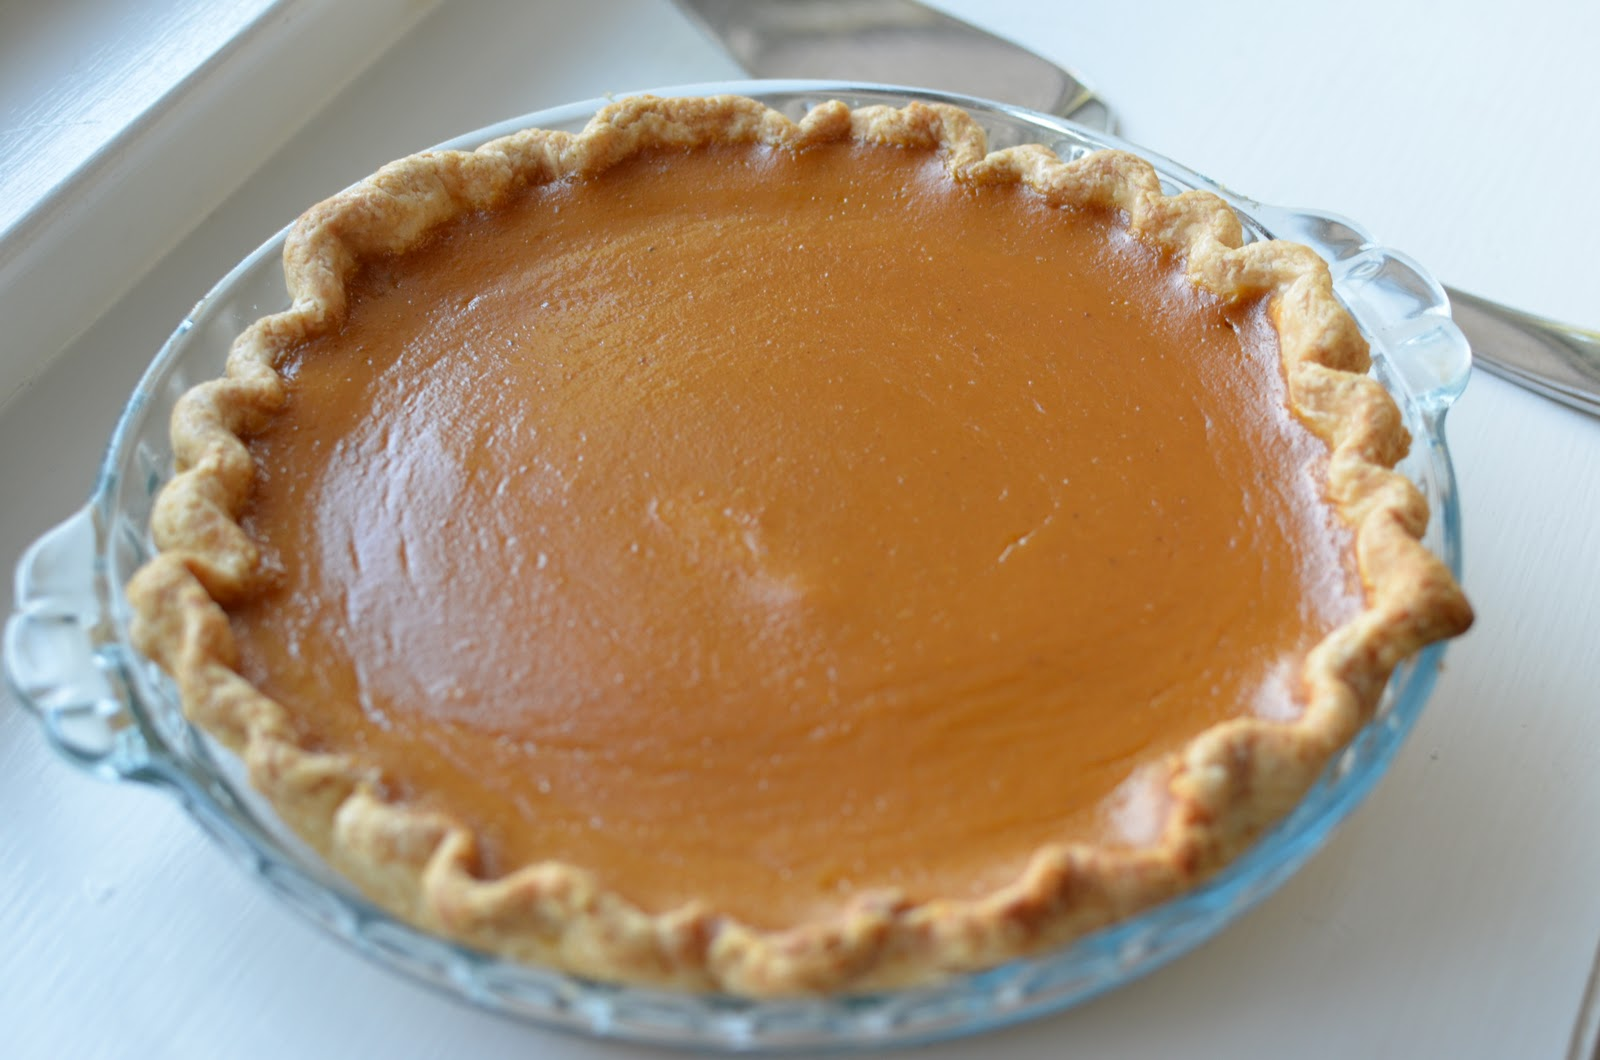 Smitten Kitchen Pumpkin Pie Recipe